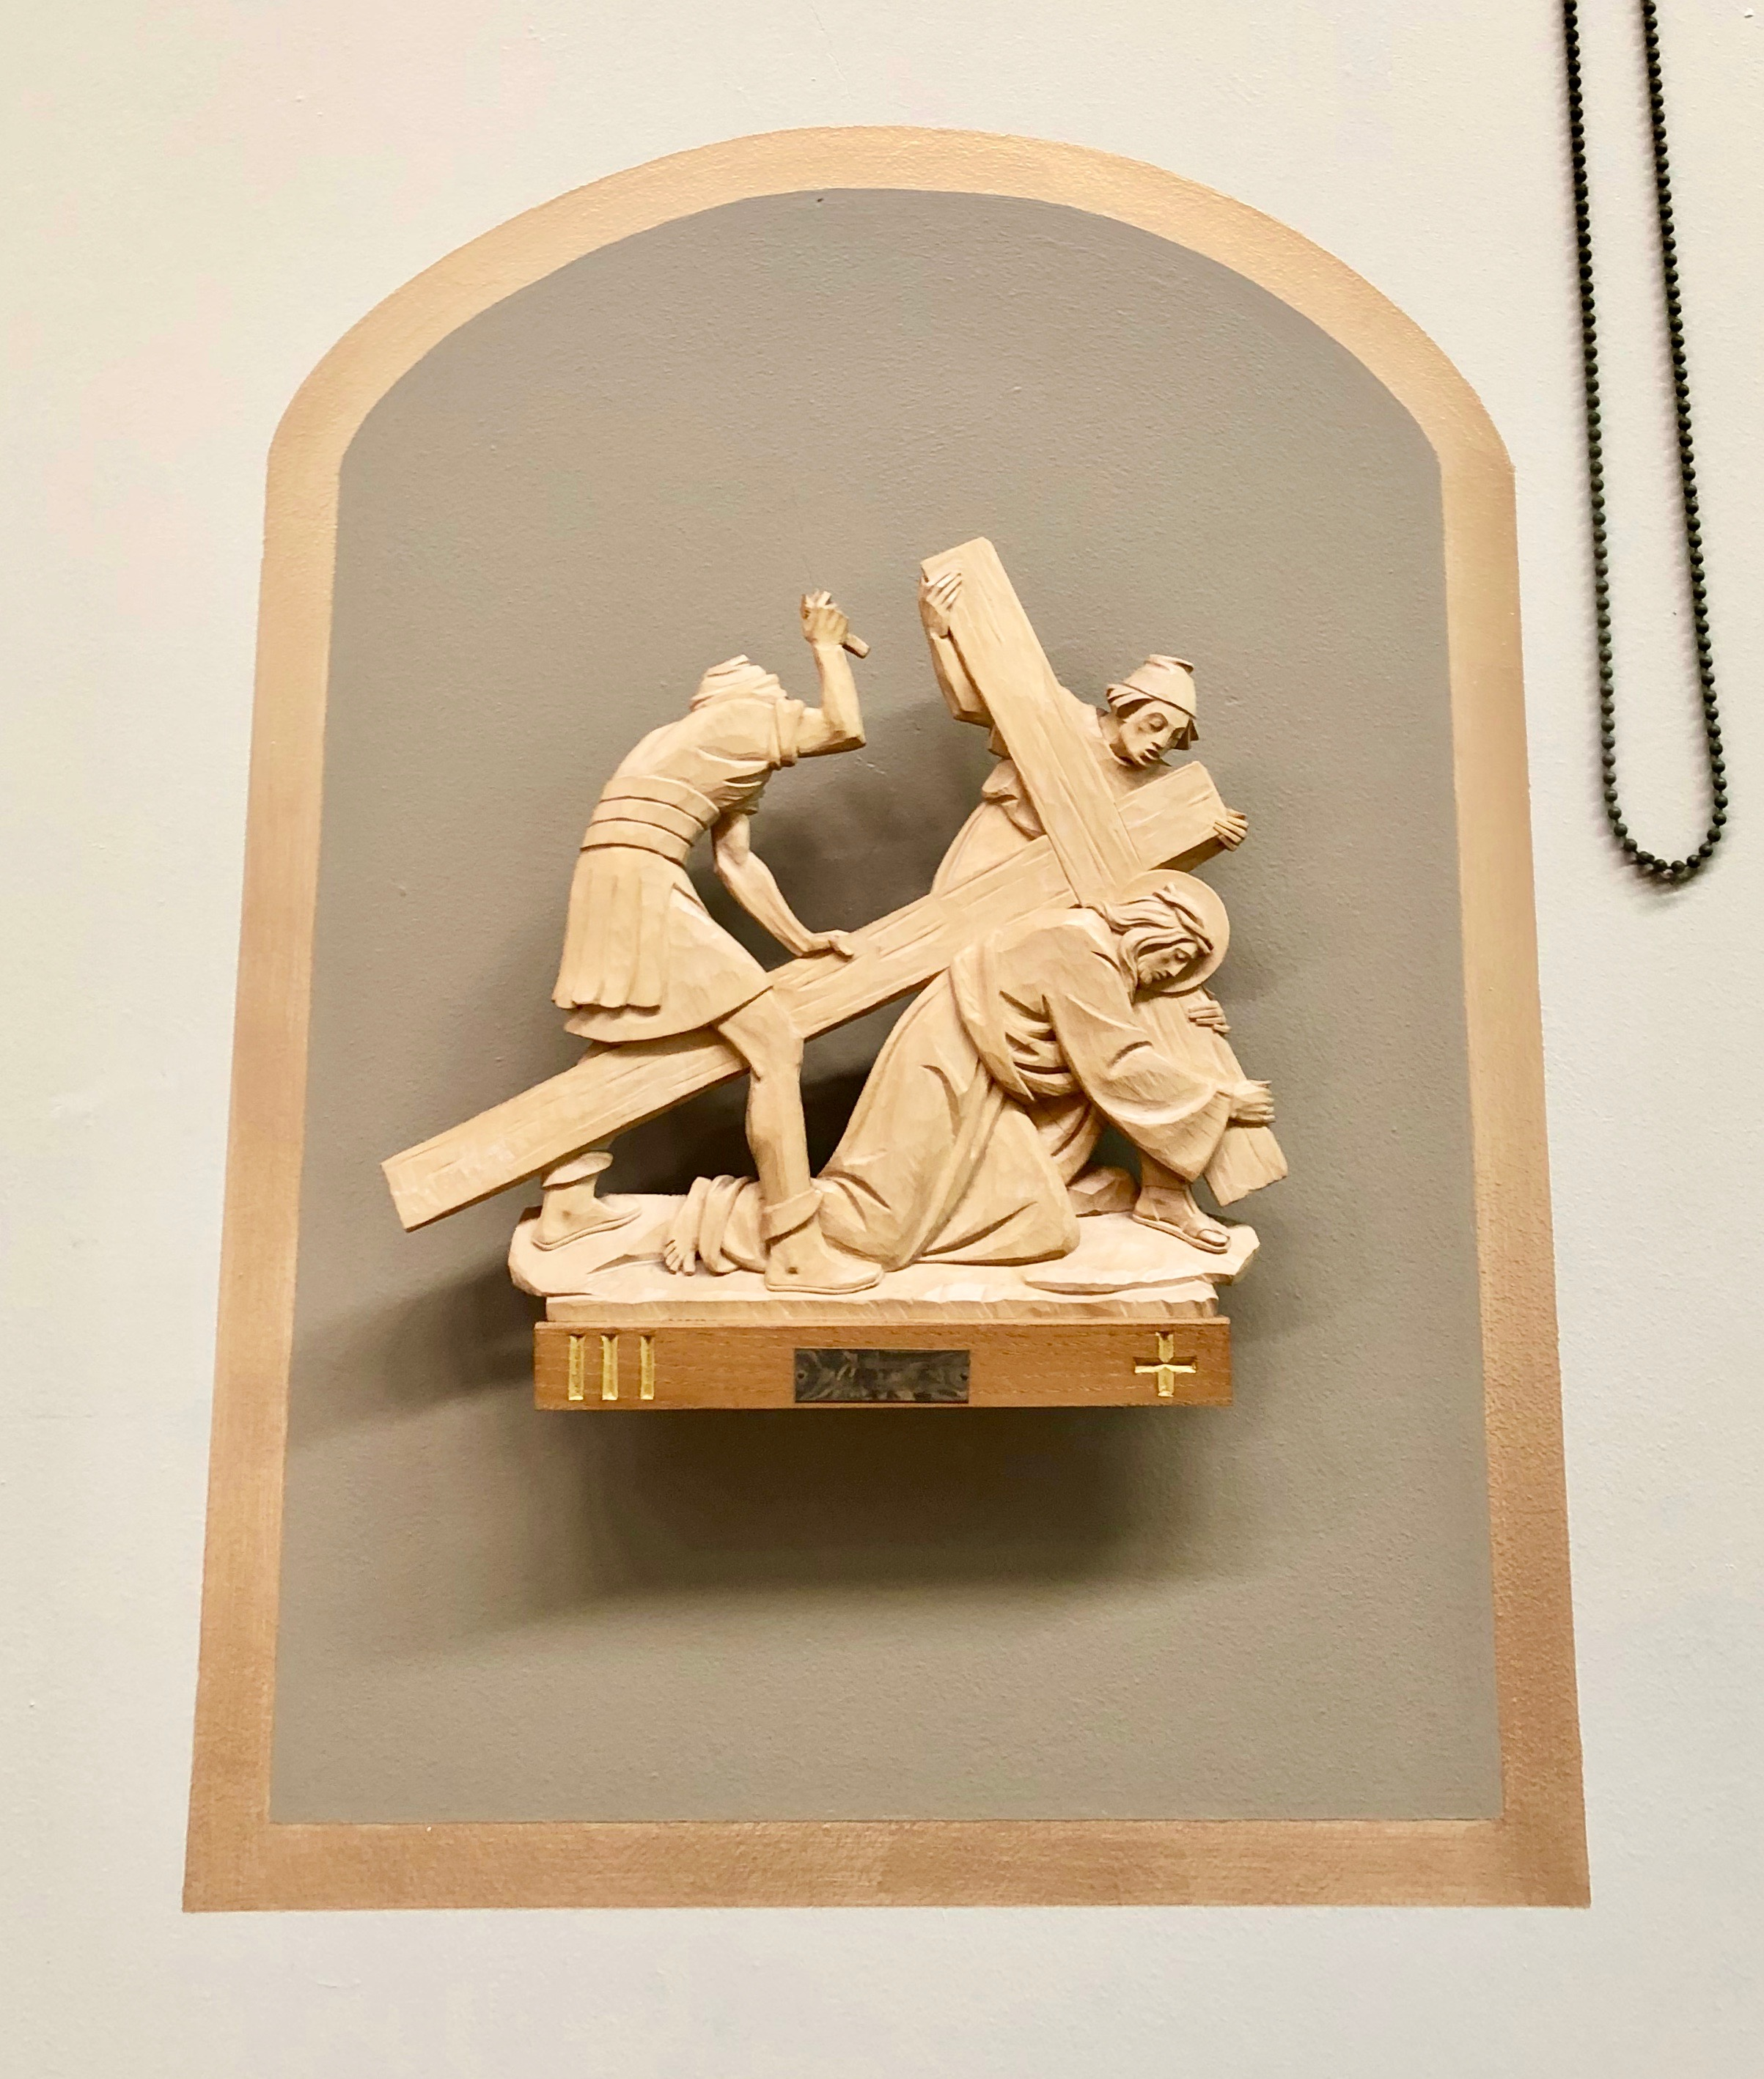 Wooden Station of the Cross, Jesus Cruifixion, St Joseph's Catholic Church, Capitola, California, Lanzini.jpeg